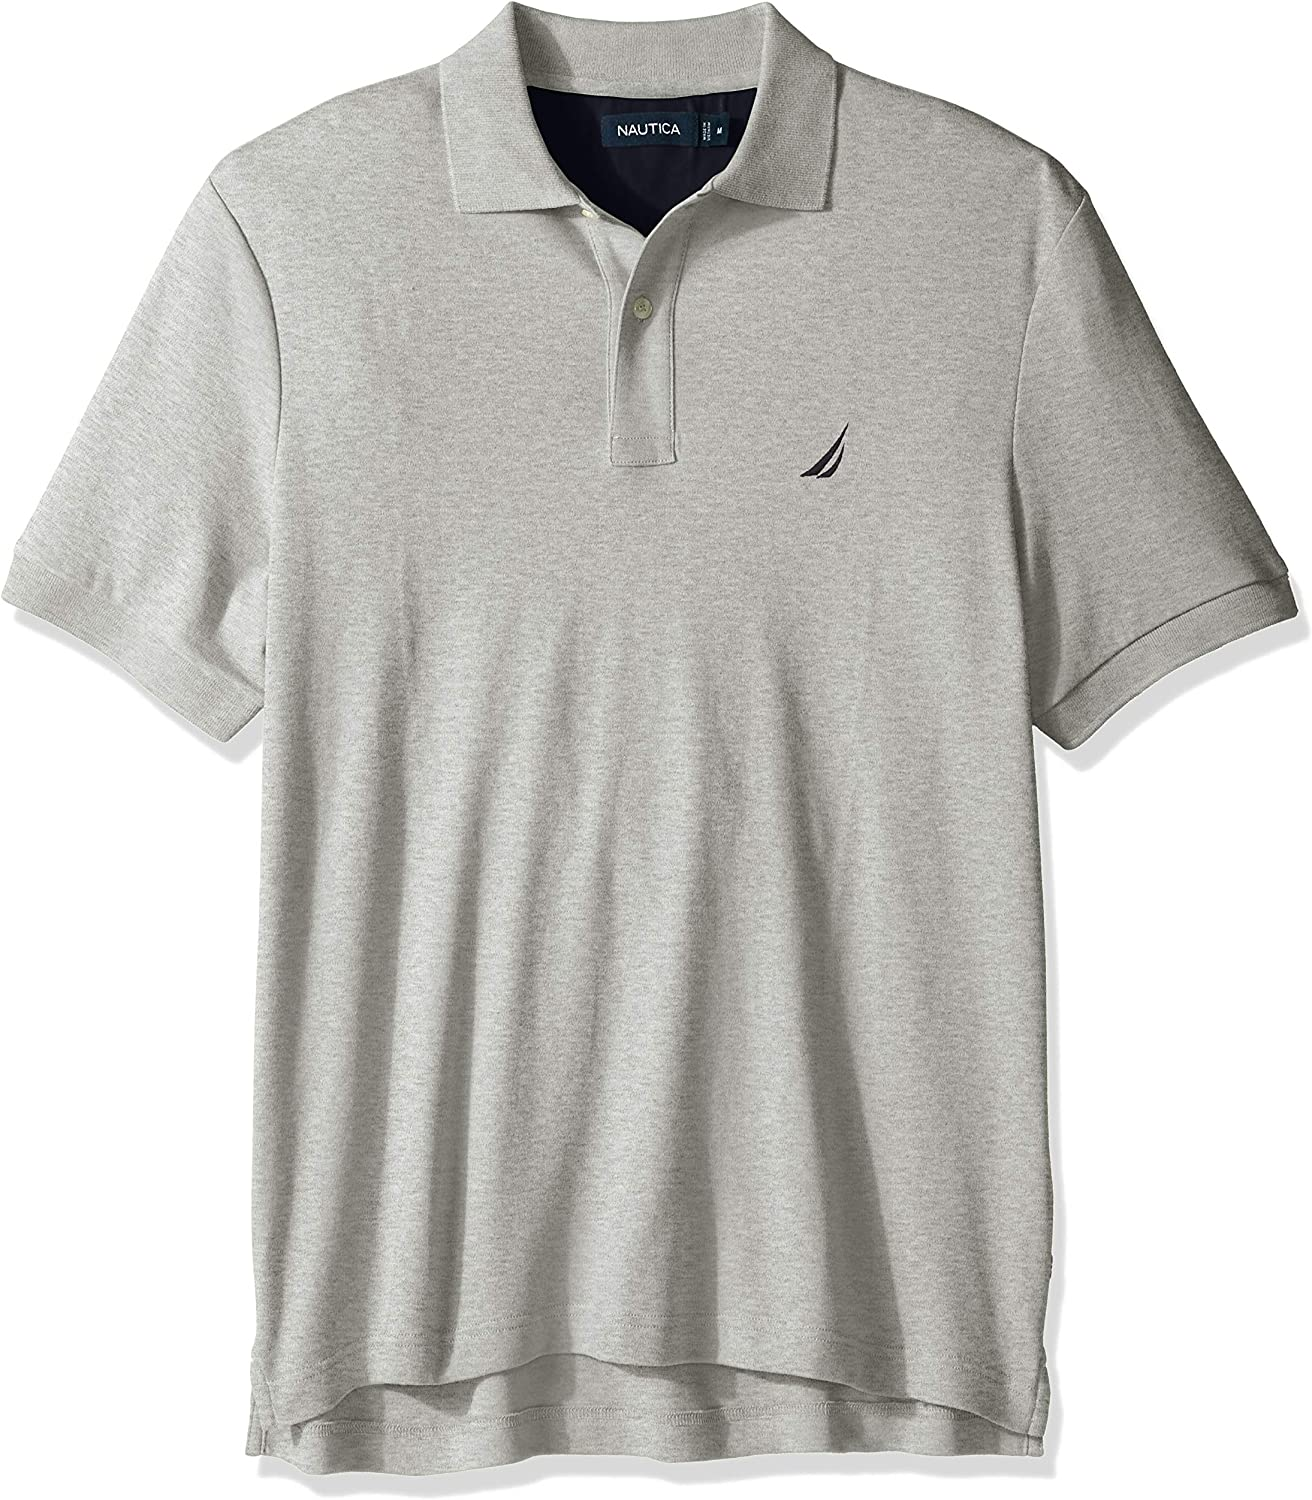 Nautica Men's Classic Fit Short Sleeve Solid Soft Cotton Polo Shirt